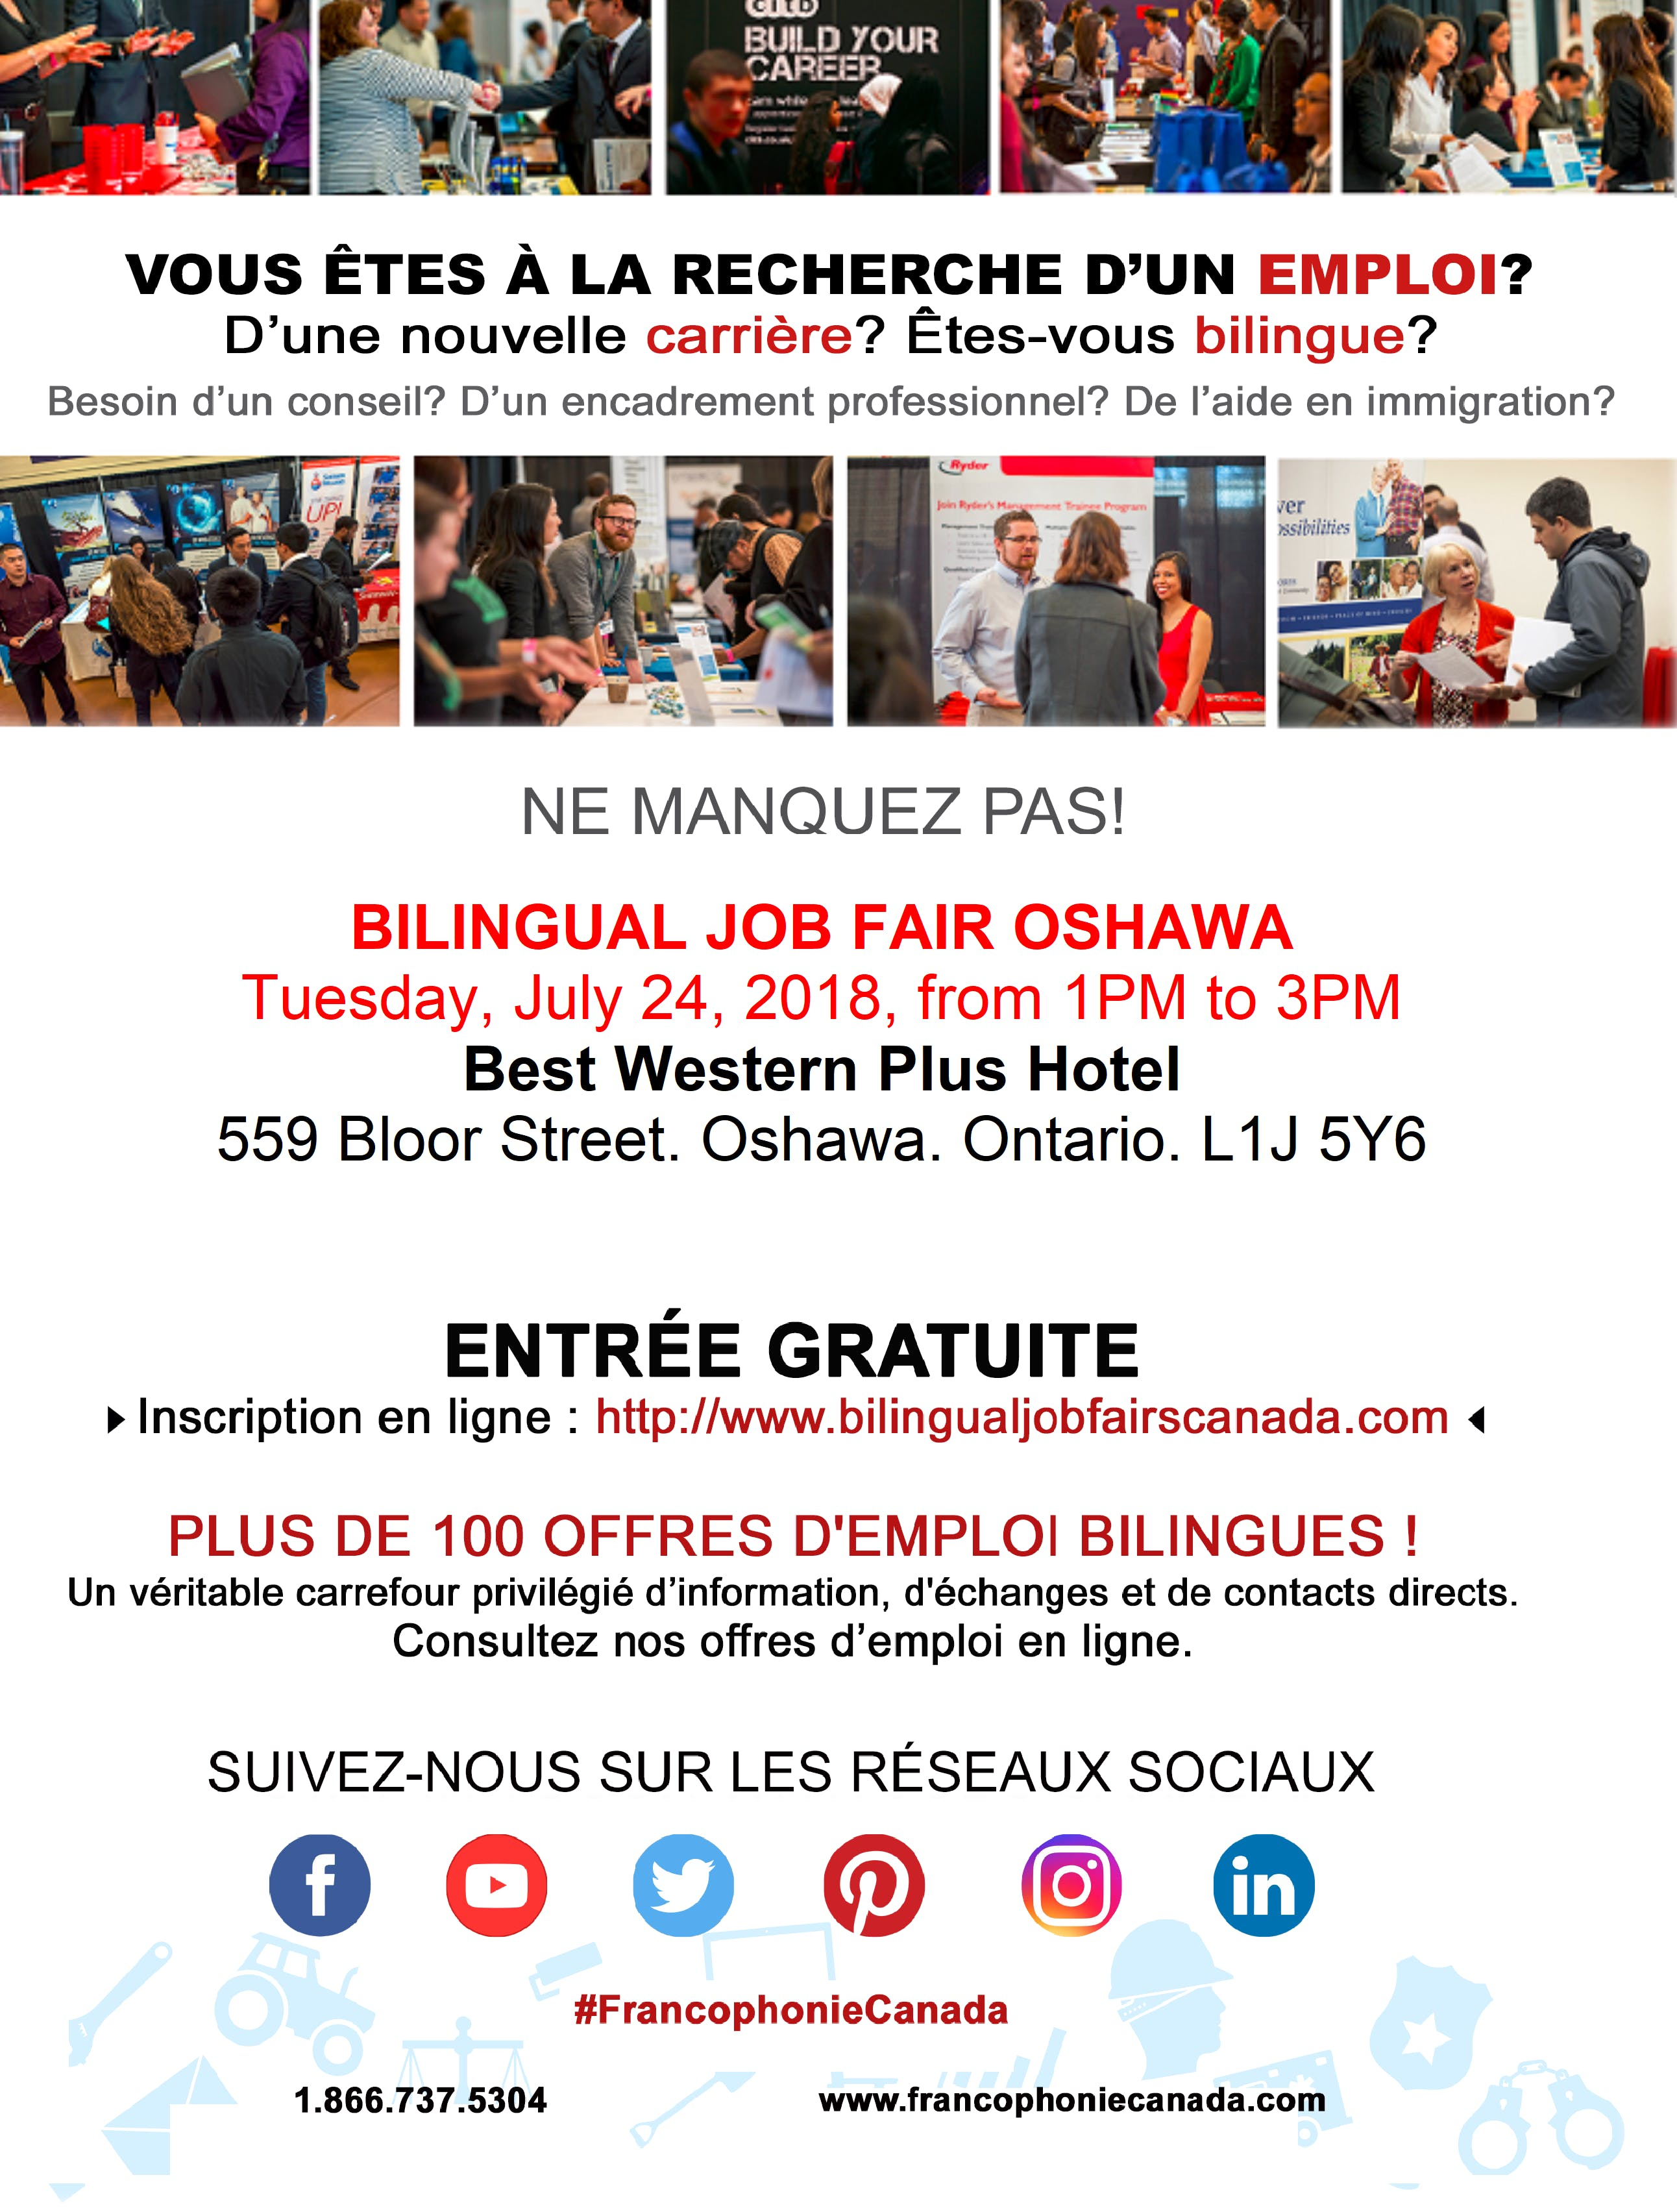 Bilingual Job Fair Oshawa - September 6th, 20